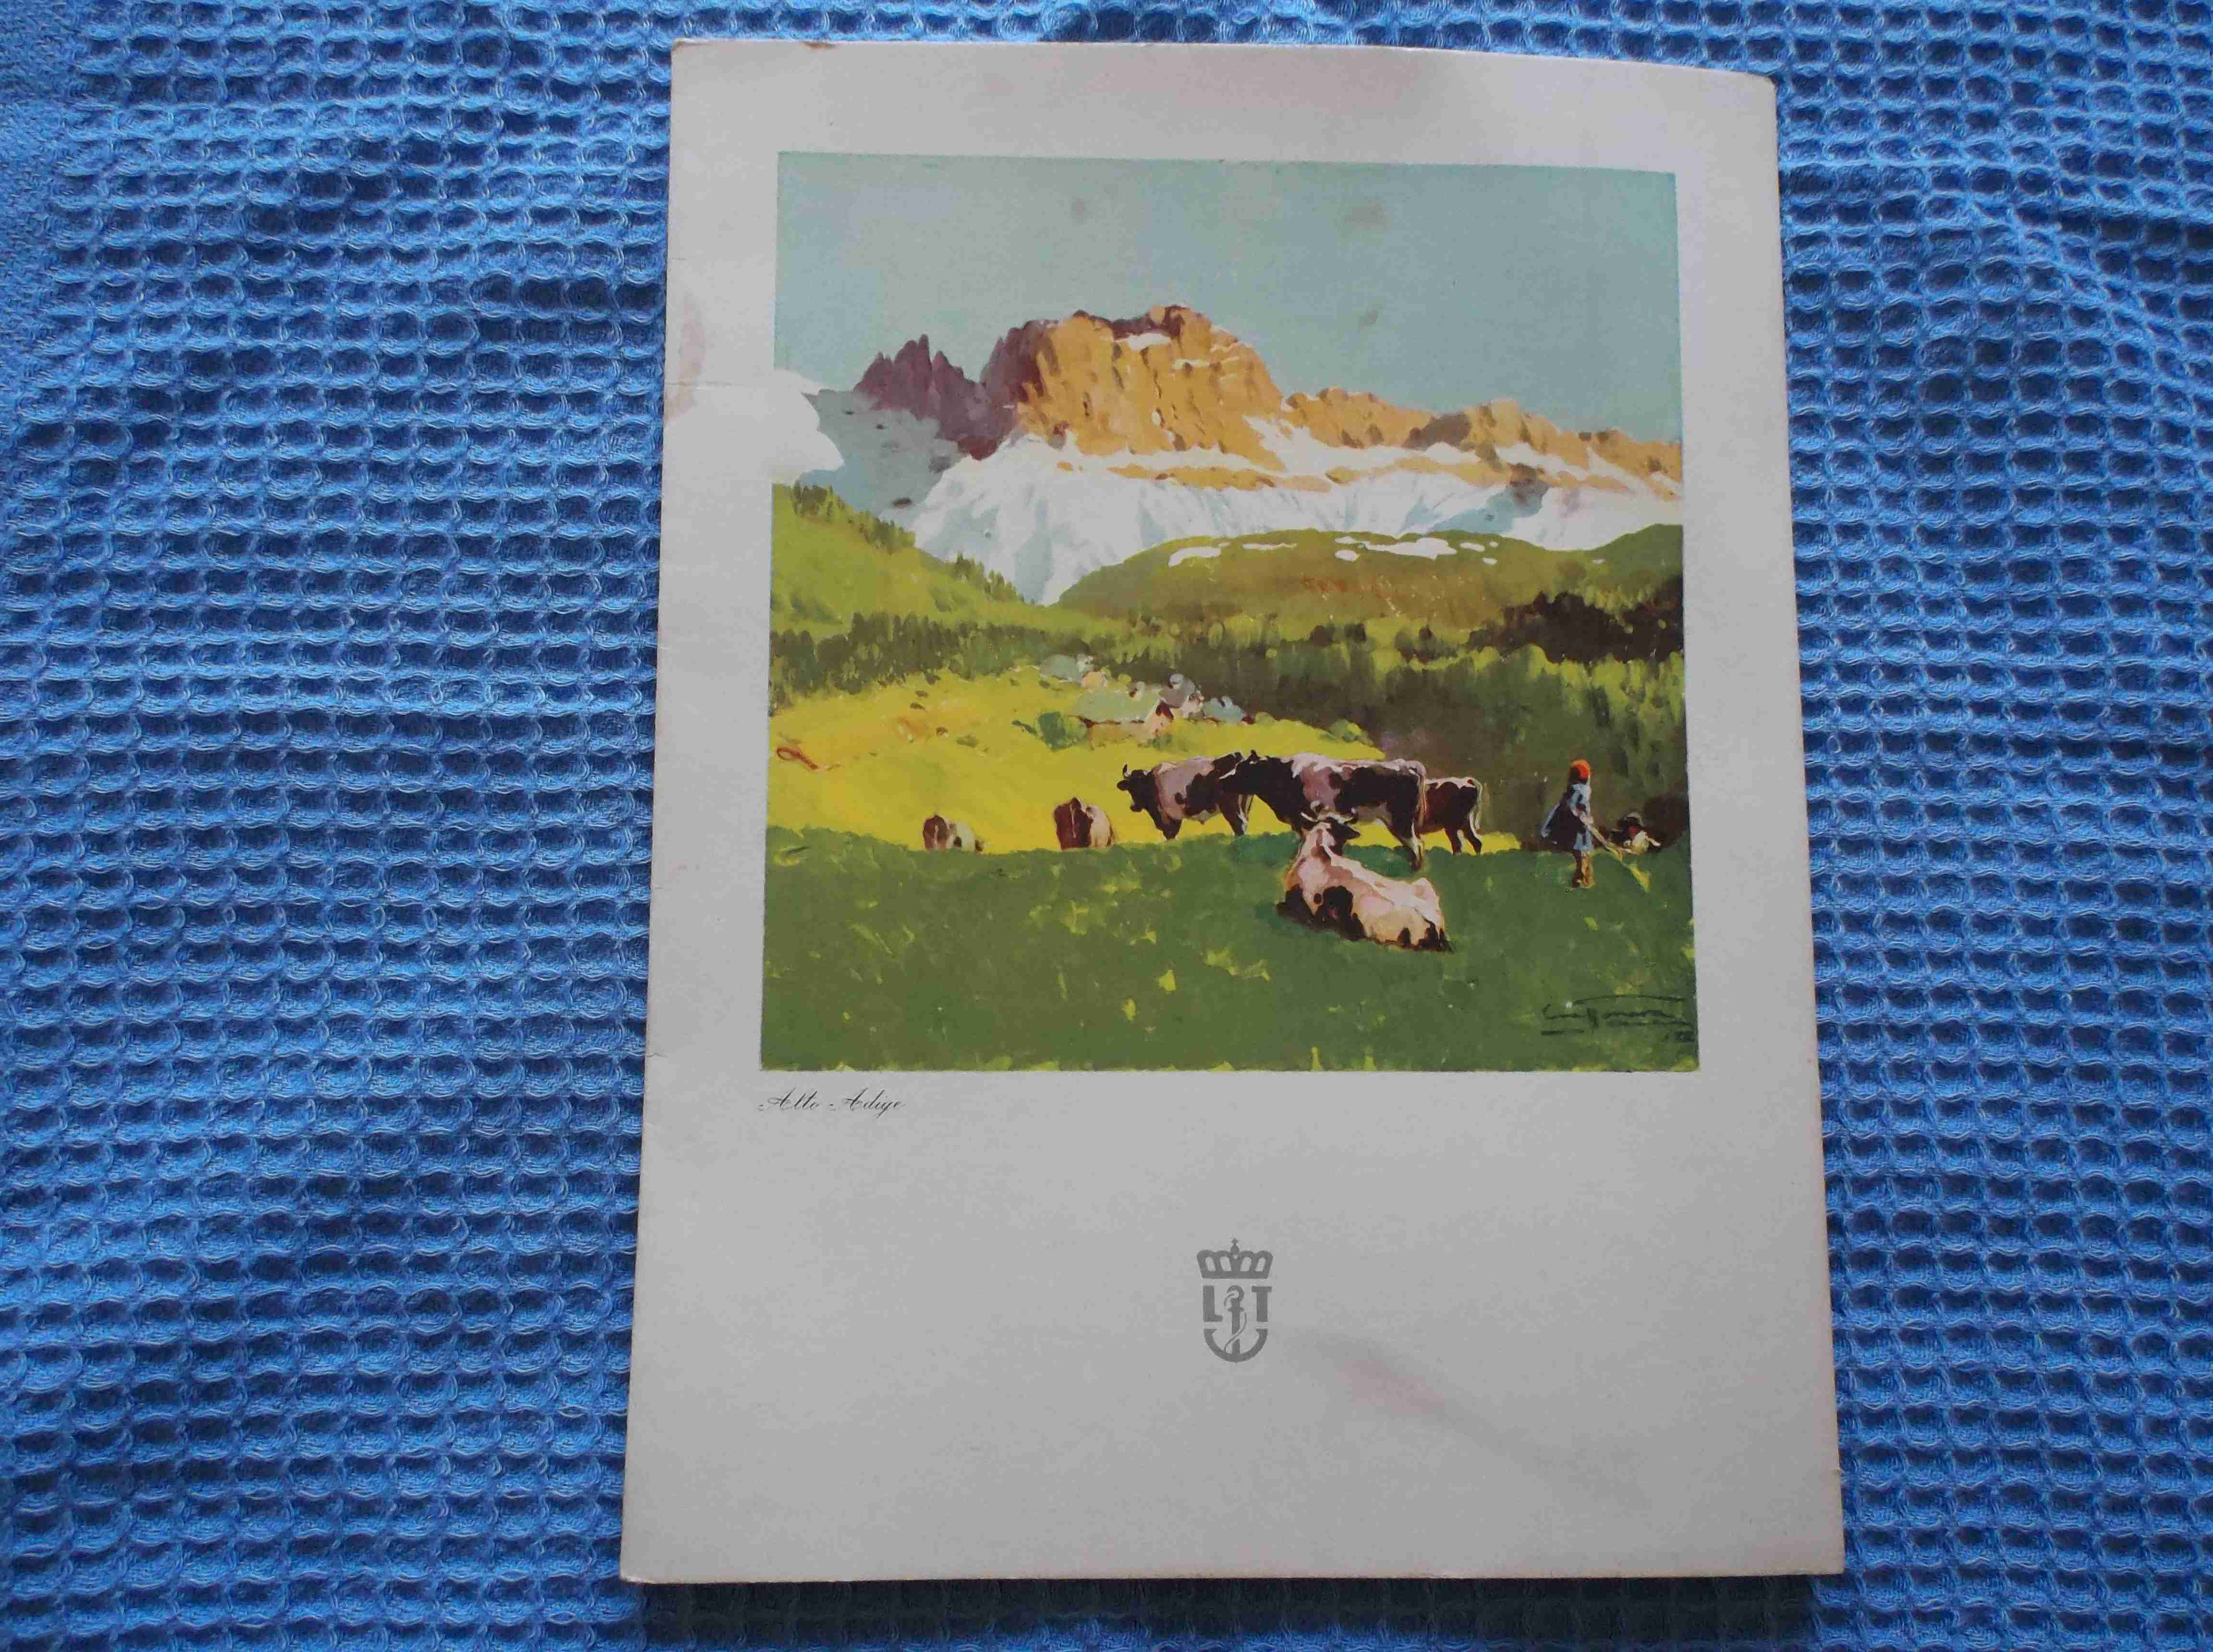 RARE SHIPS DINNER MENU FROM THE ROTTERDAM LLOYD VESSEL THE TMV WILLIAM RUYS DATED 1954